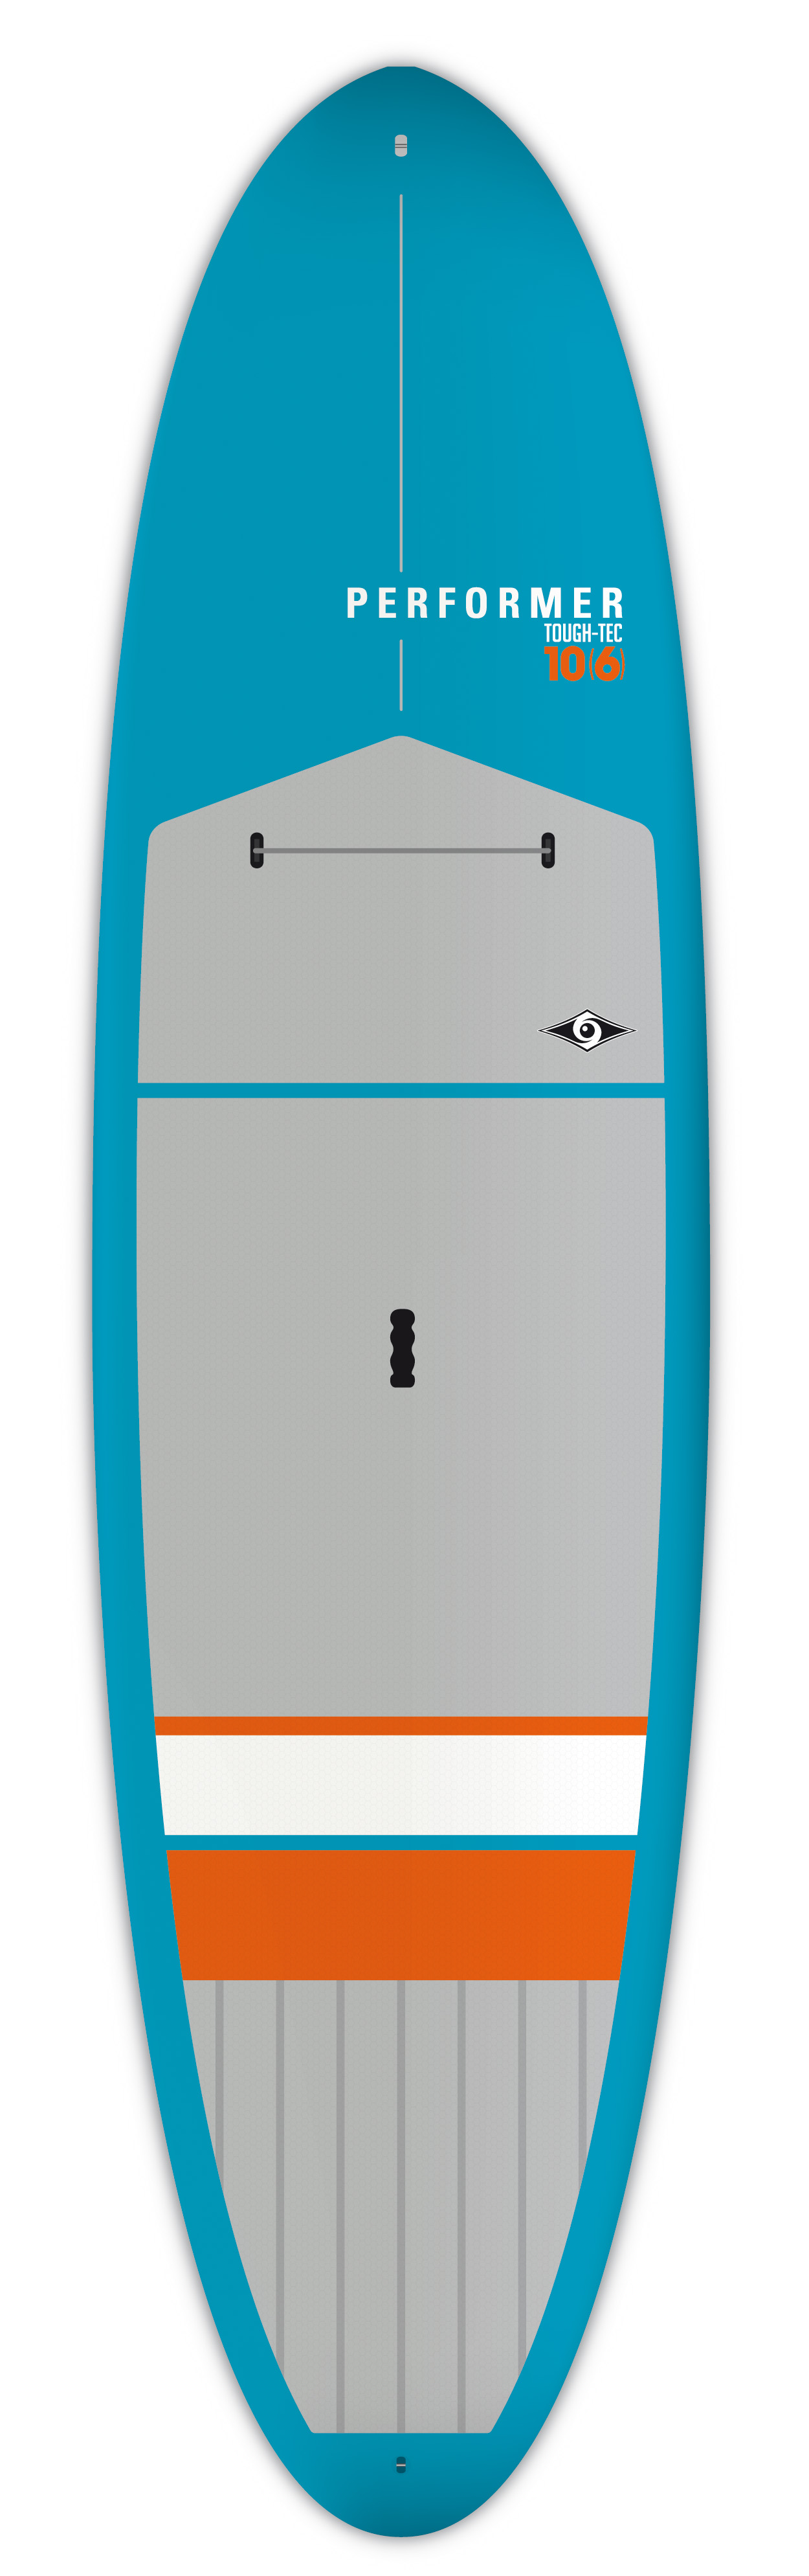 "Paddleboards: TOUGH-TEC 10'6"" Performer by BIC SUP - Image 2578"